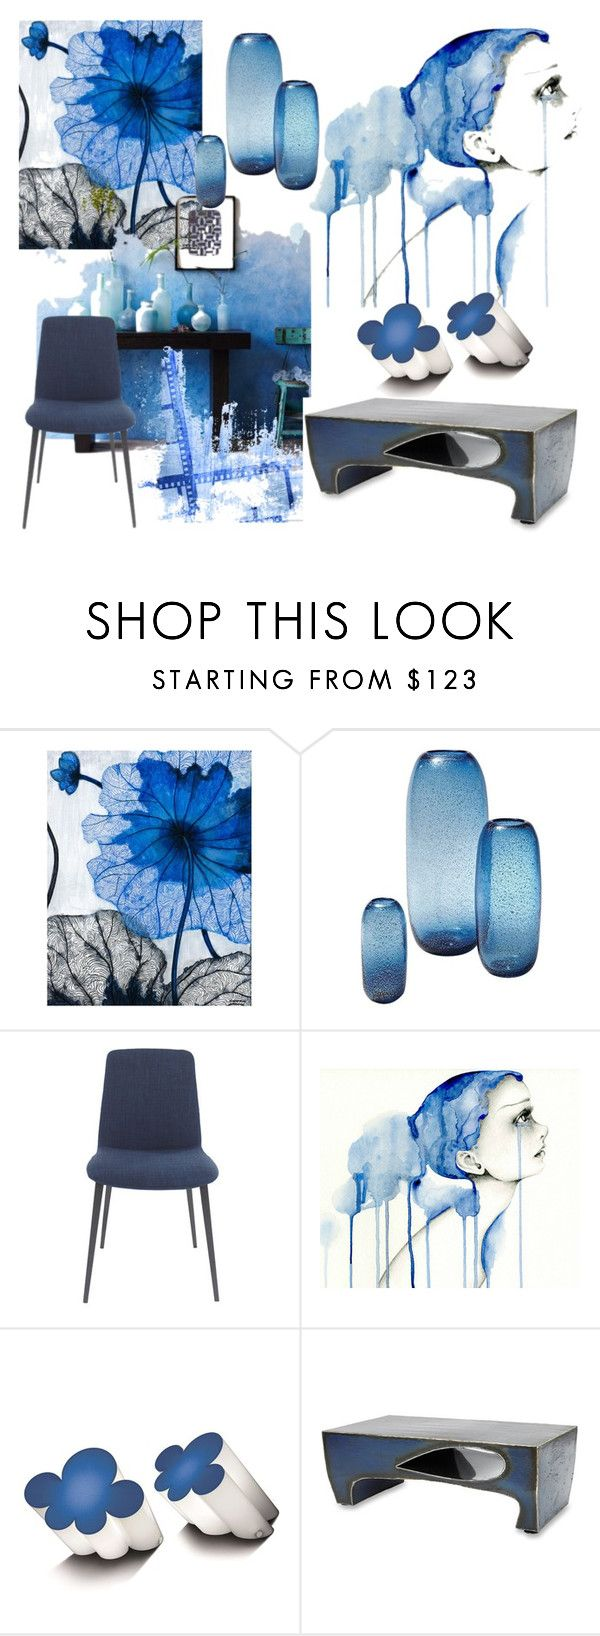 """♥"" by macopa on Polyvore featuring interior, interiors, interior design, home, home decor, interior decorating, Grandin Road, Global Views, Moe's Home Collection and Centro Studi Poltronova"